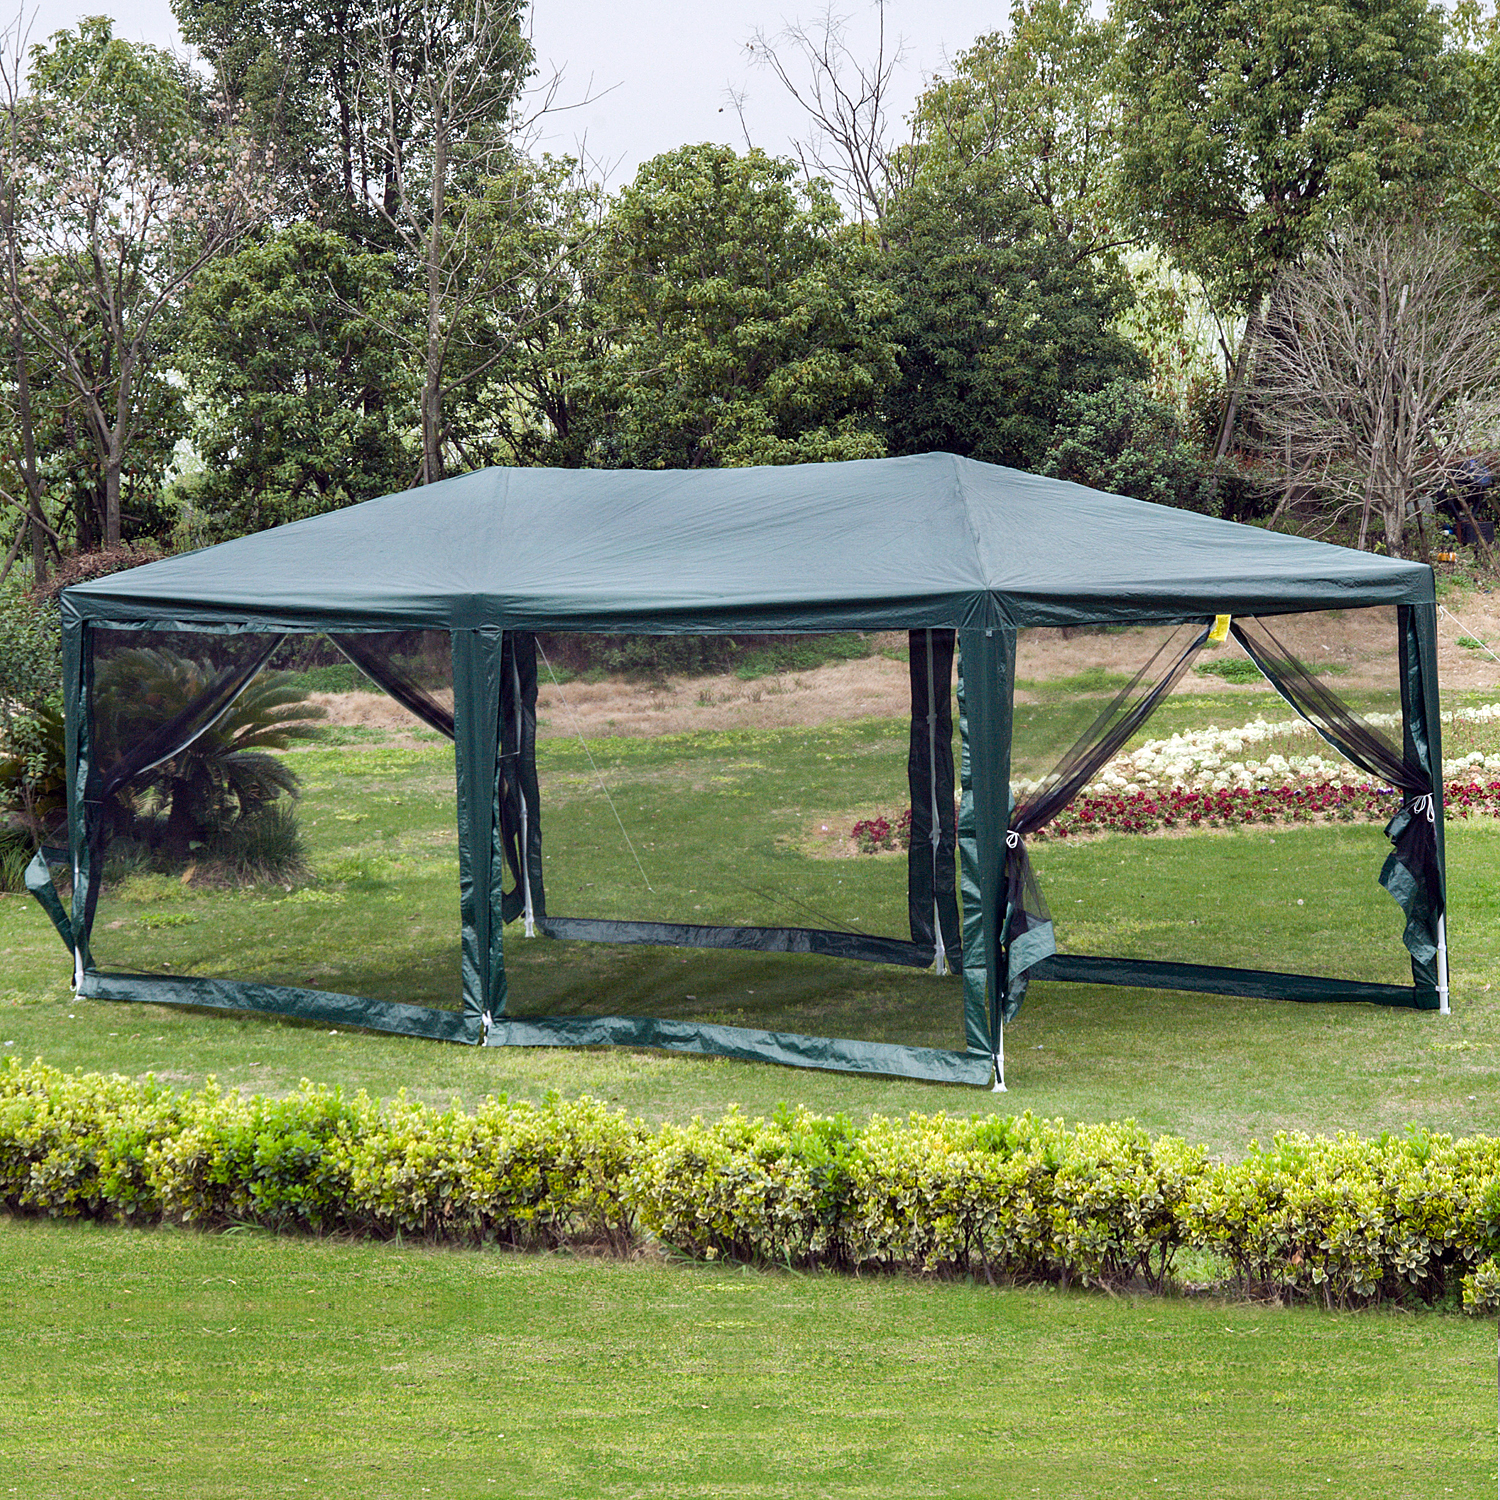 10-039-x-20-039-Gazebo-Canopy-Cover-Tent-Patio-Party-w-Removable-Mesh-Side-Walls thumbnail 5